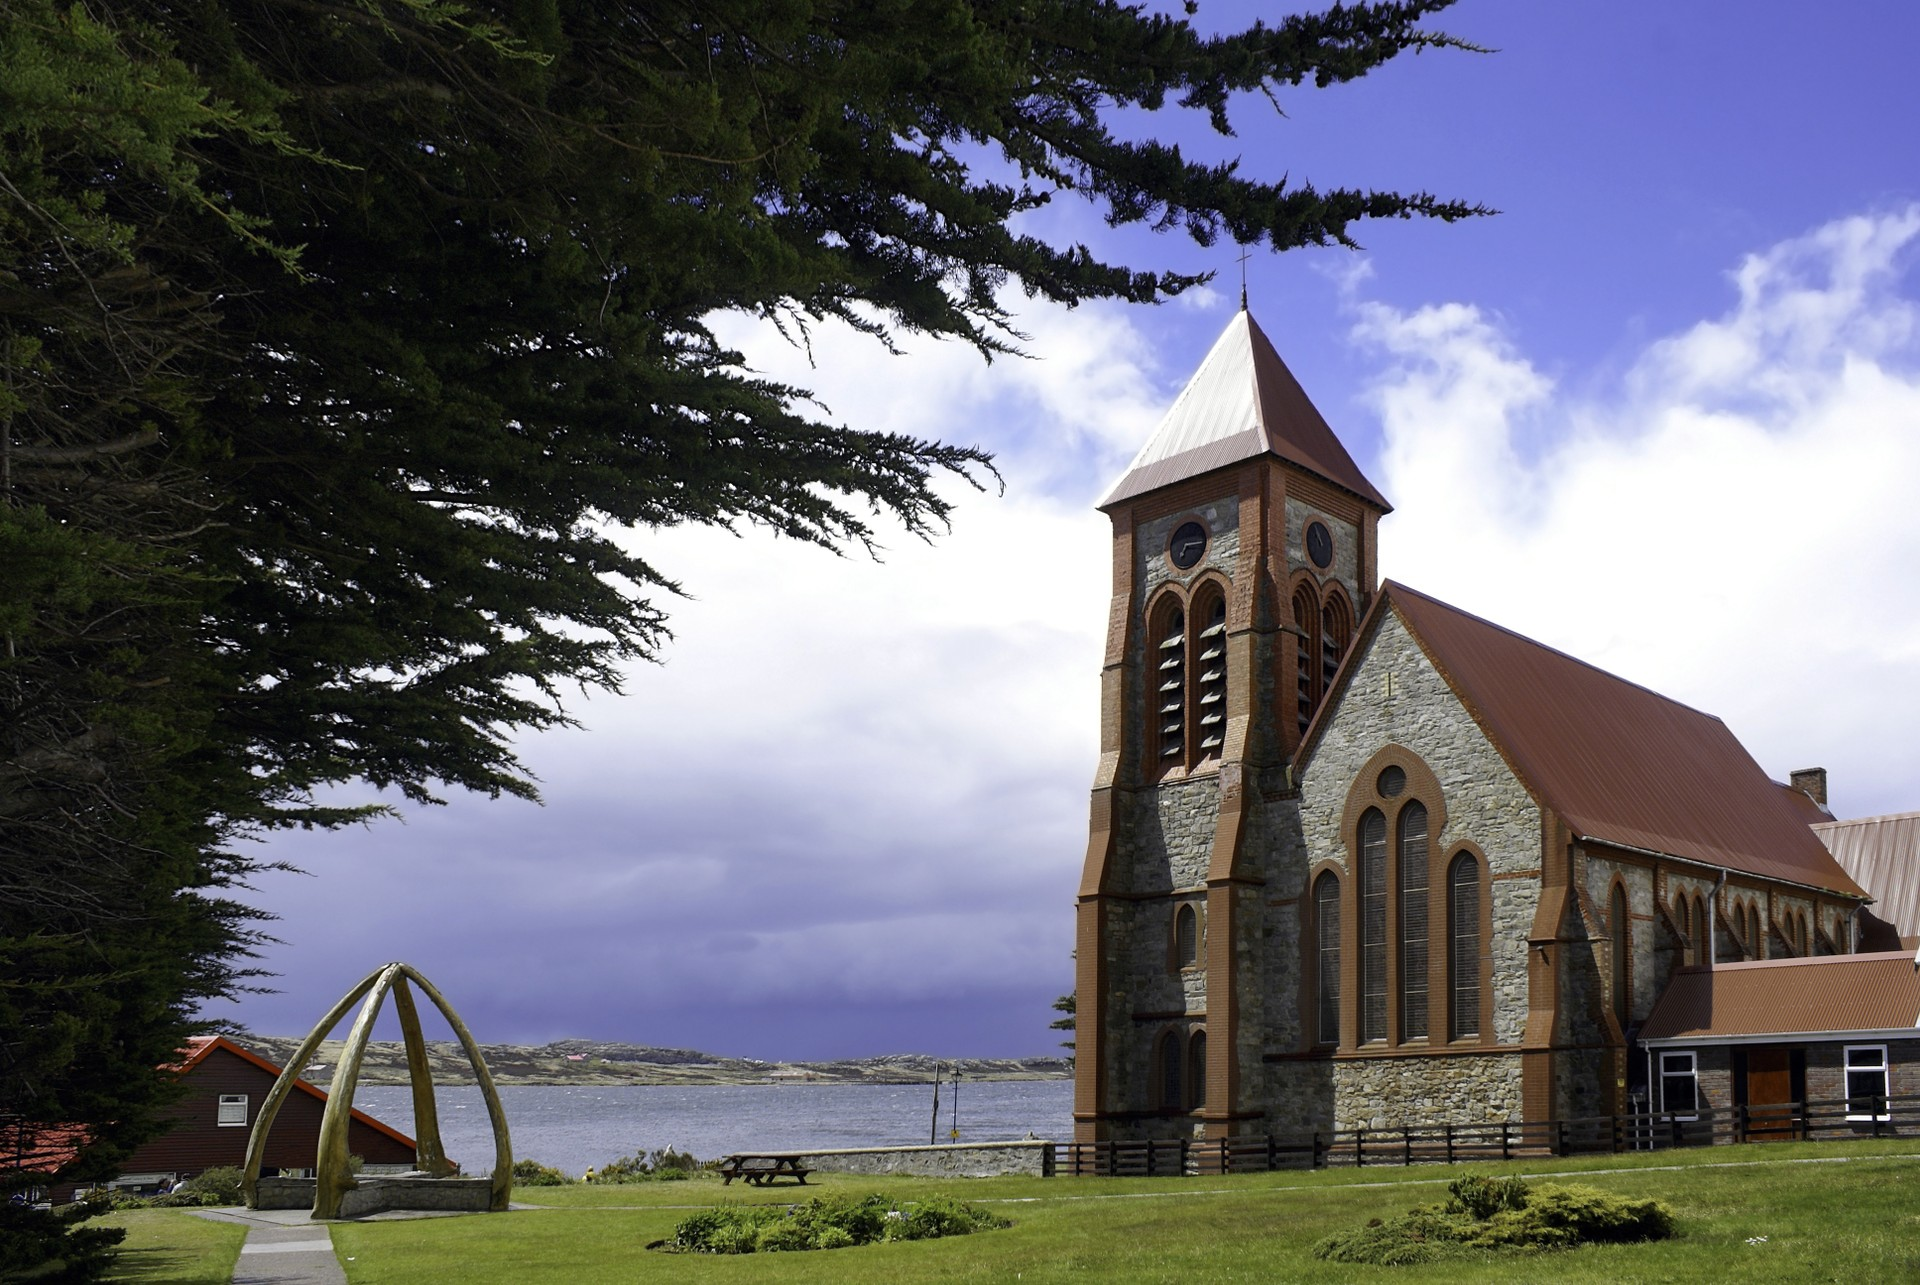 Stanley Cathedral and whale bone arch